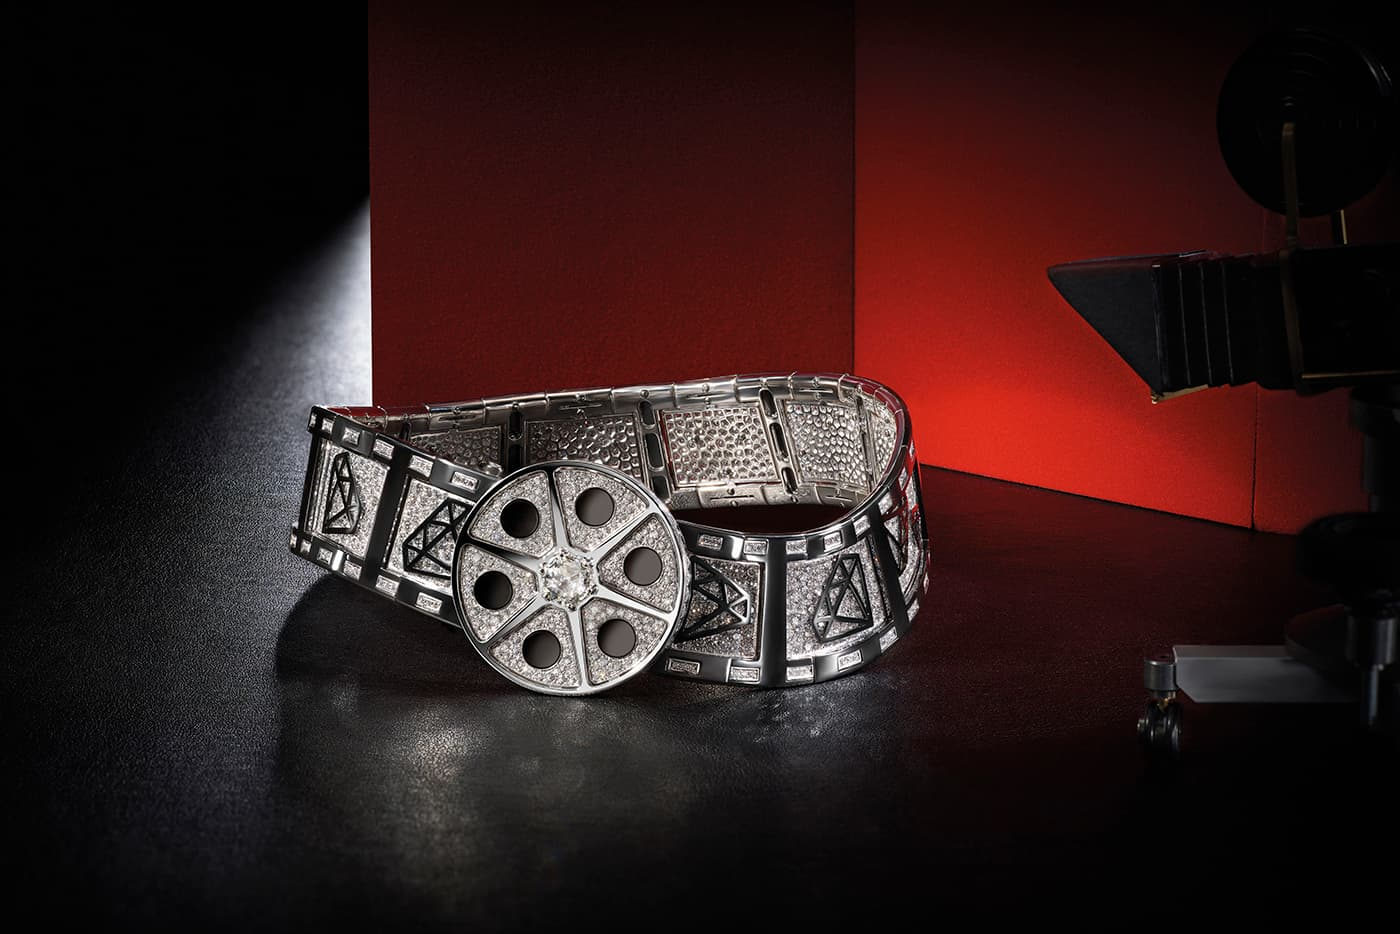 Bvlgari 'Cinemagia' collection 'Action!' necklace with 32ct of diamonds in zirconium